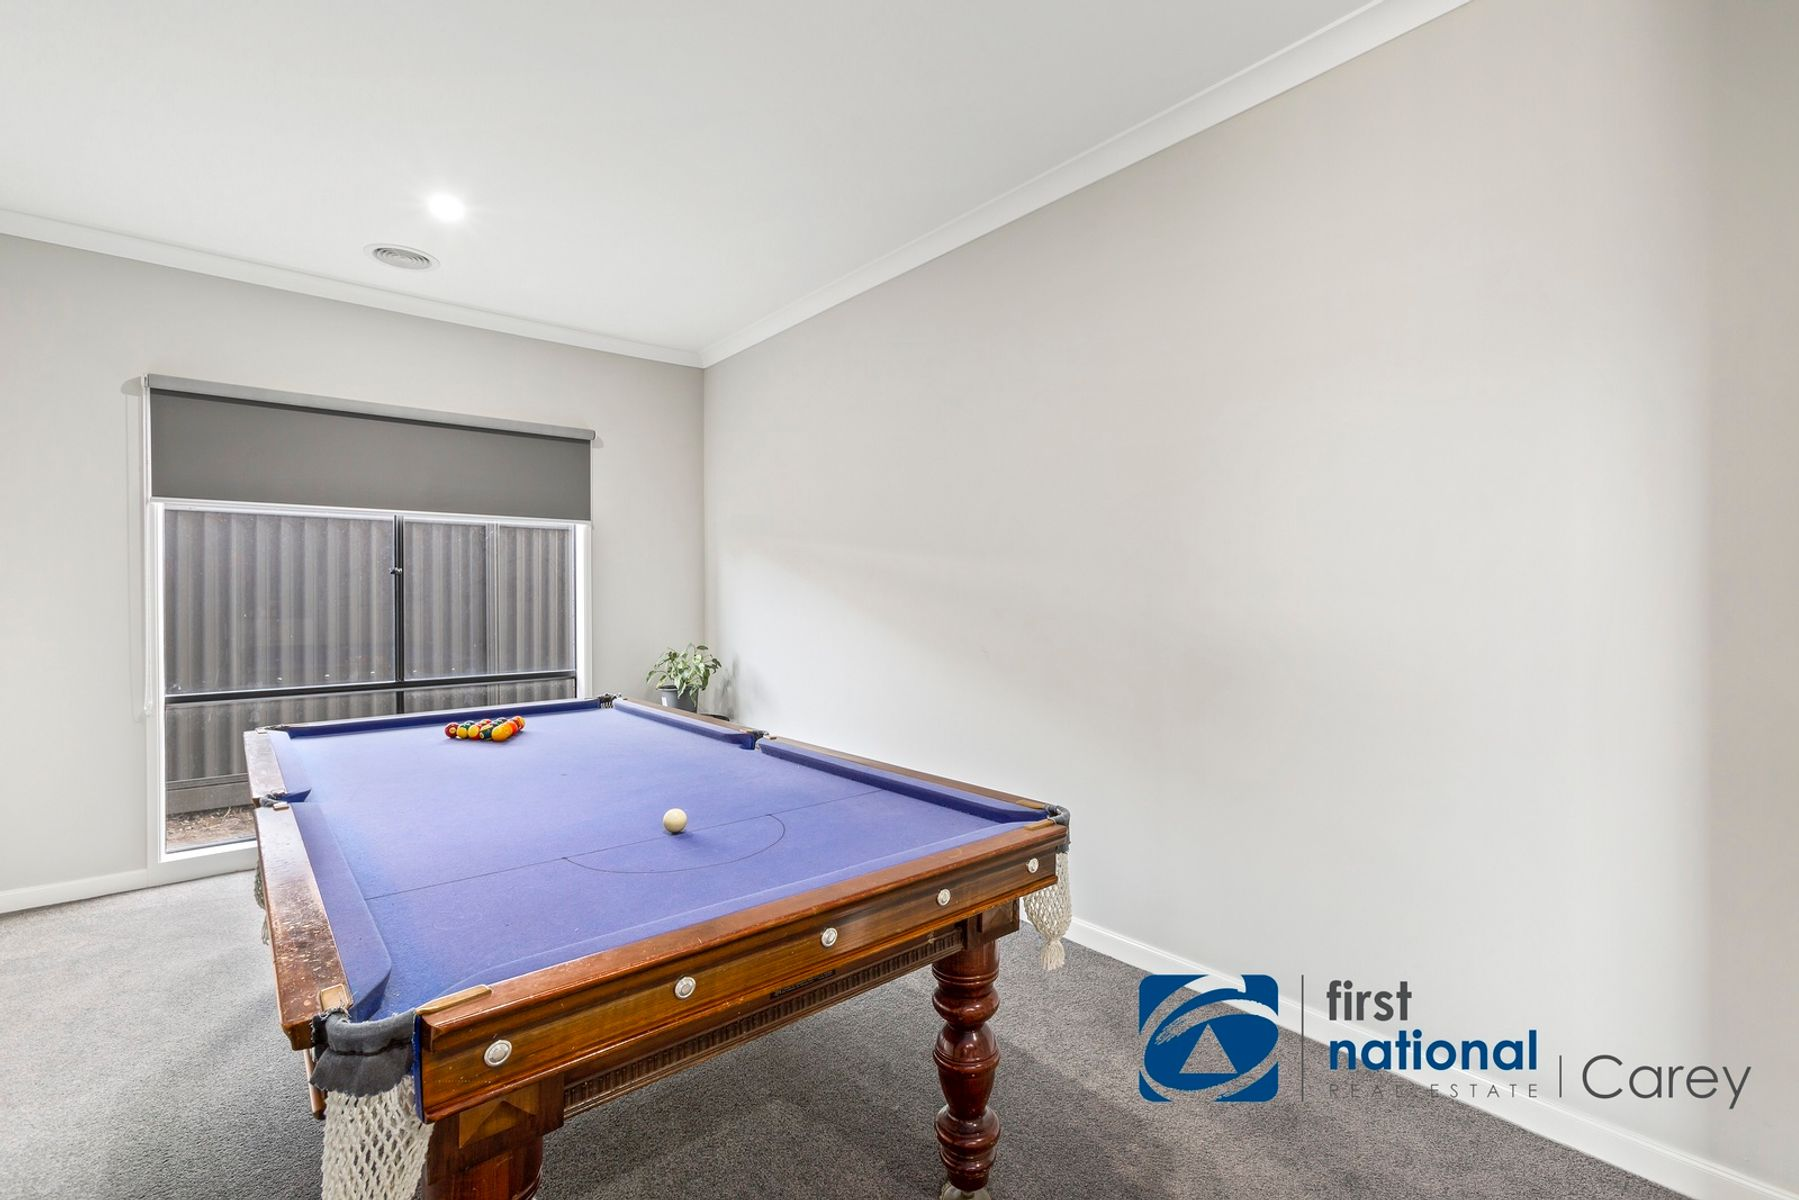 22-24 Foxglove Way, Lara, VIC 3212